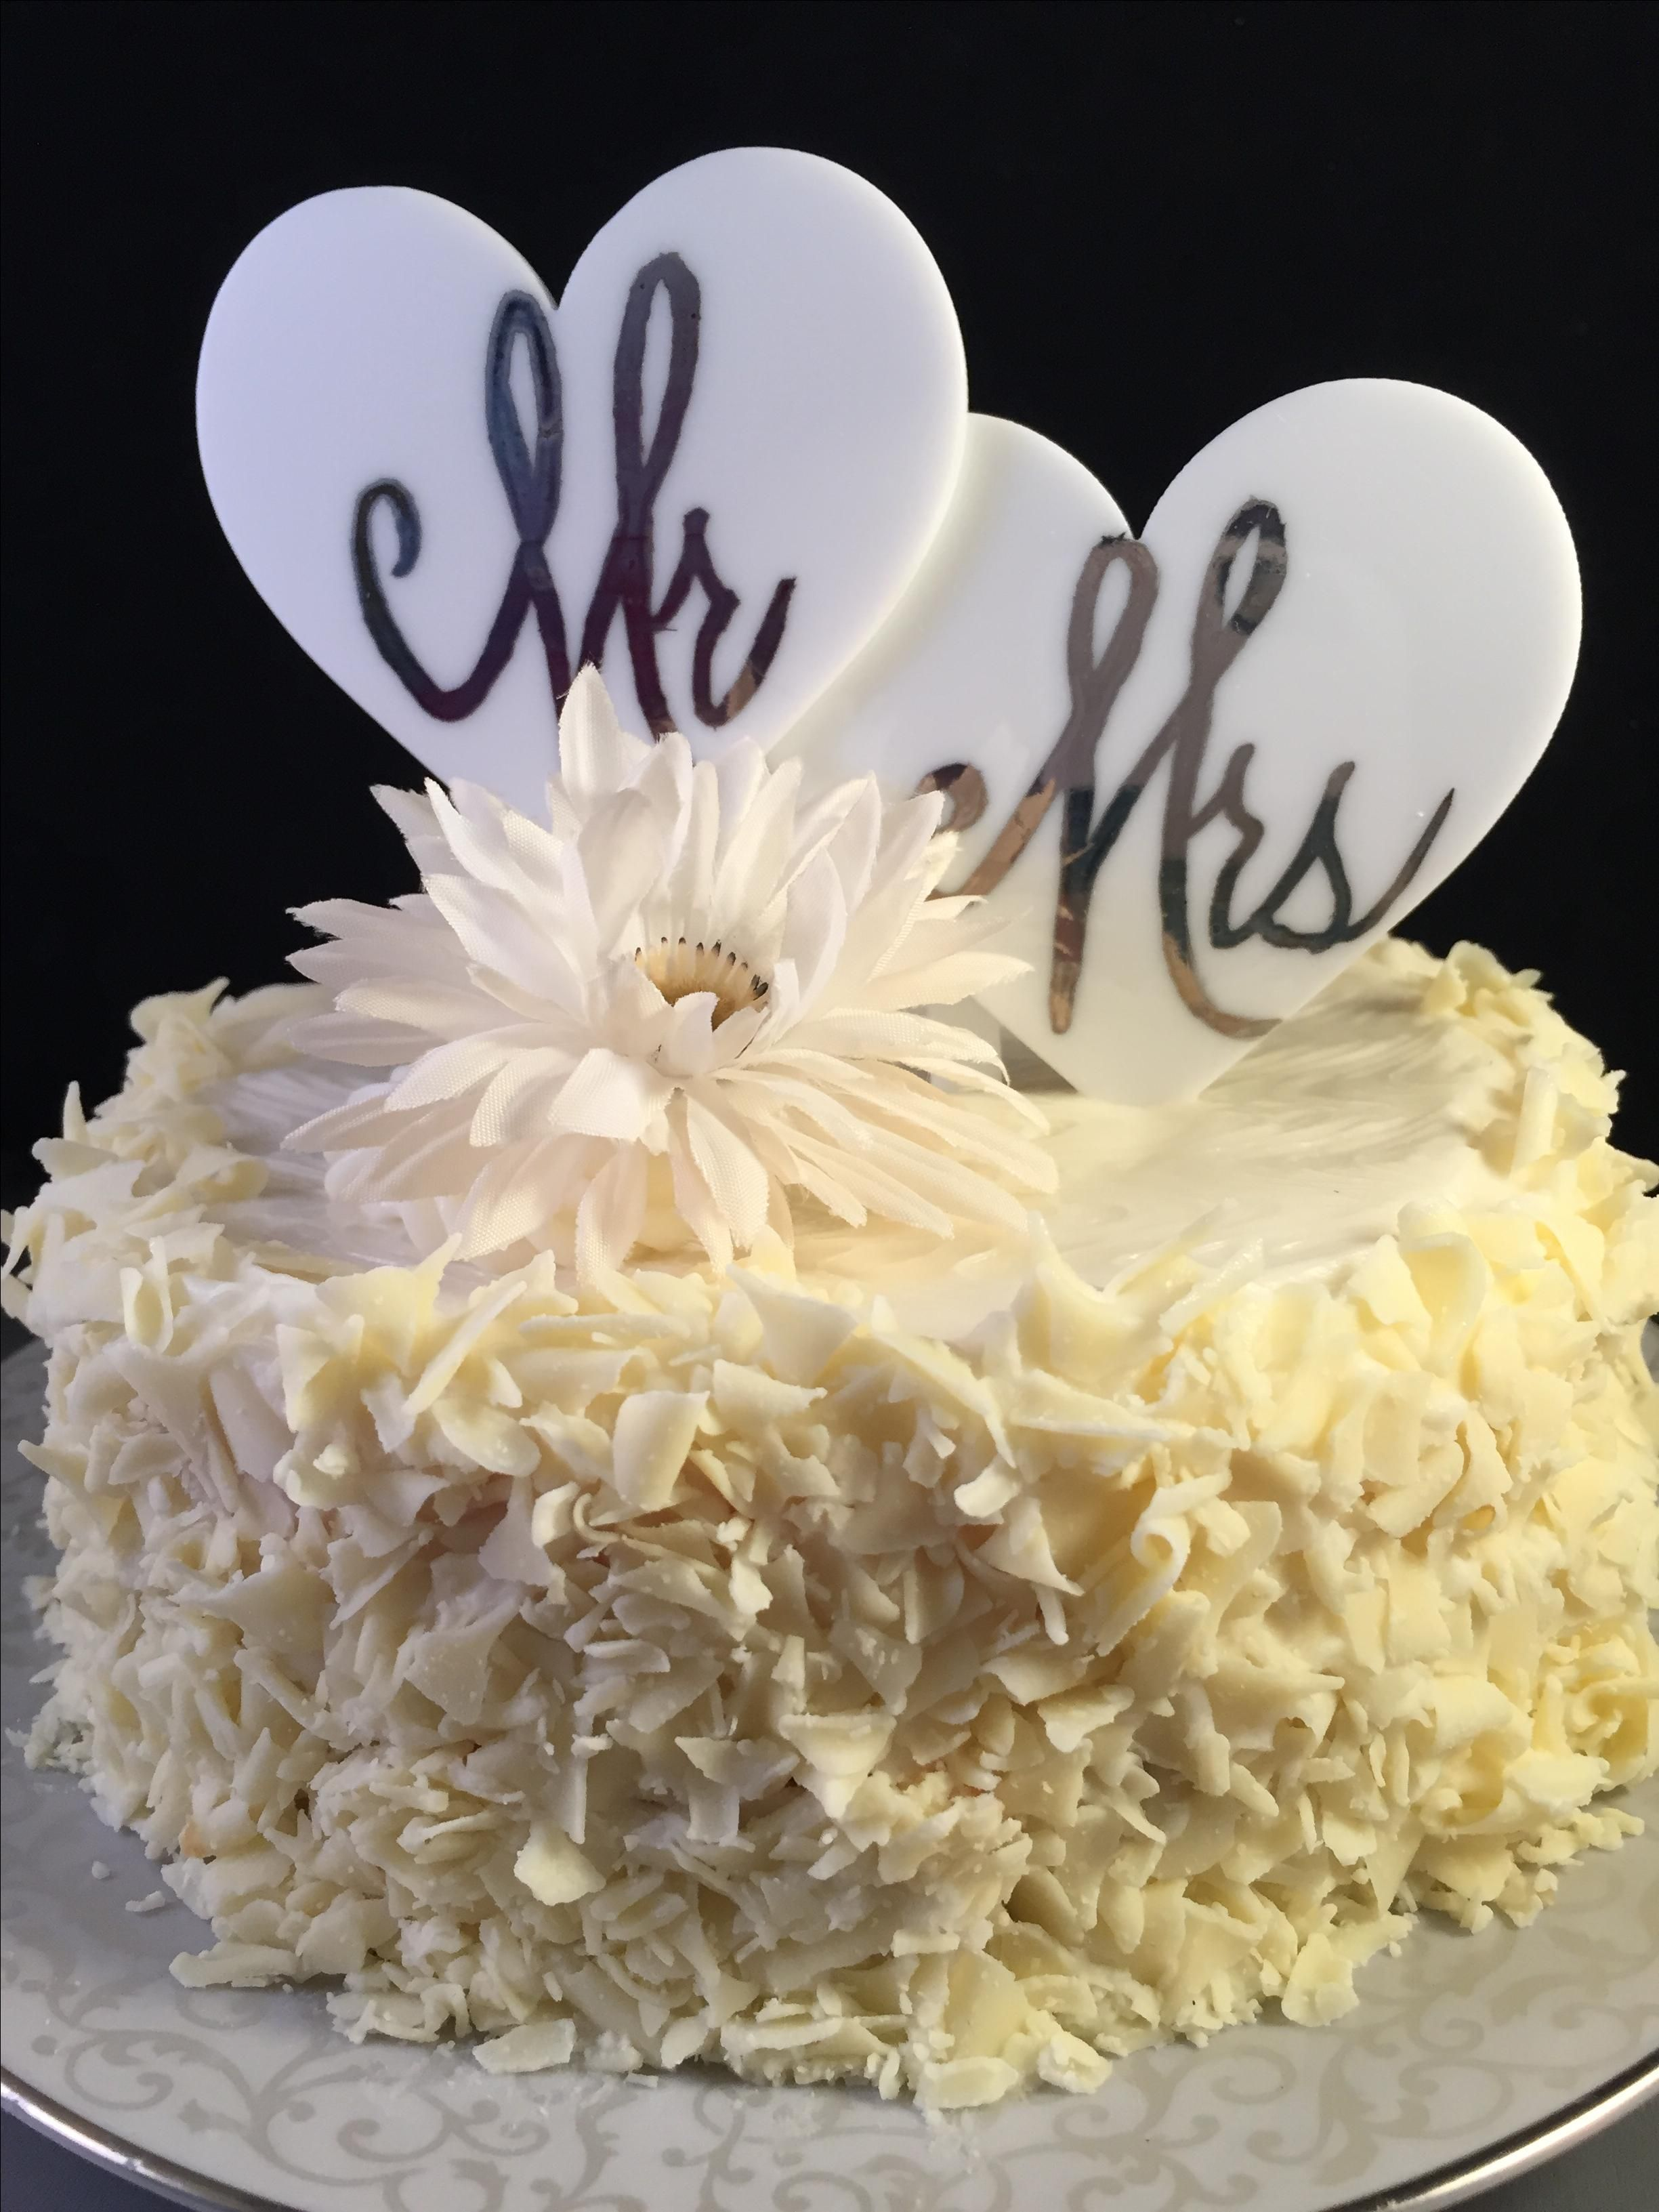 Buy a Custom Personalized Wedding Cake Topper, made to order from ...